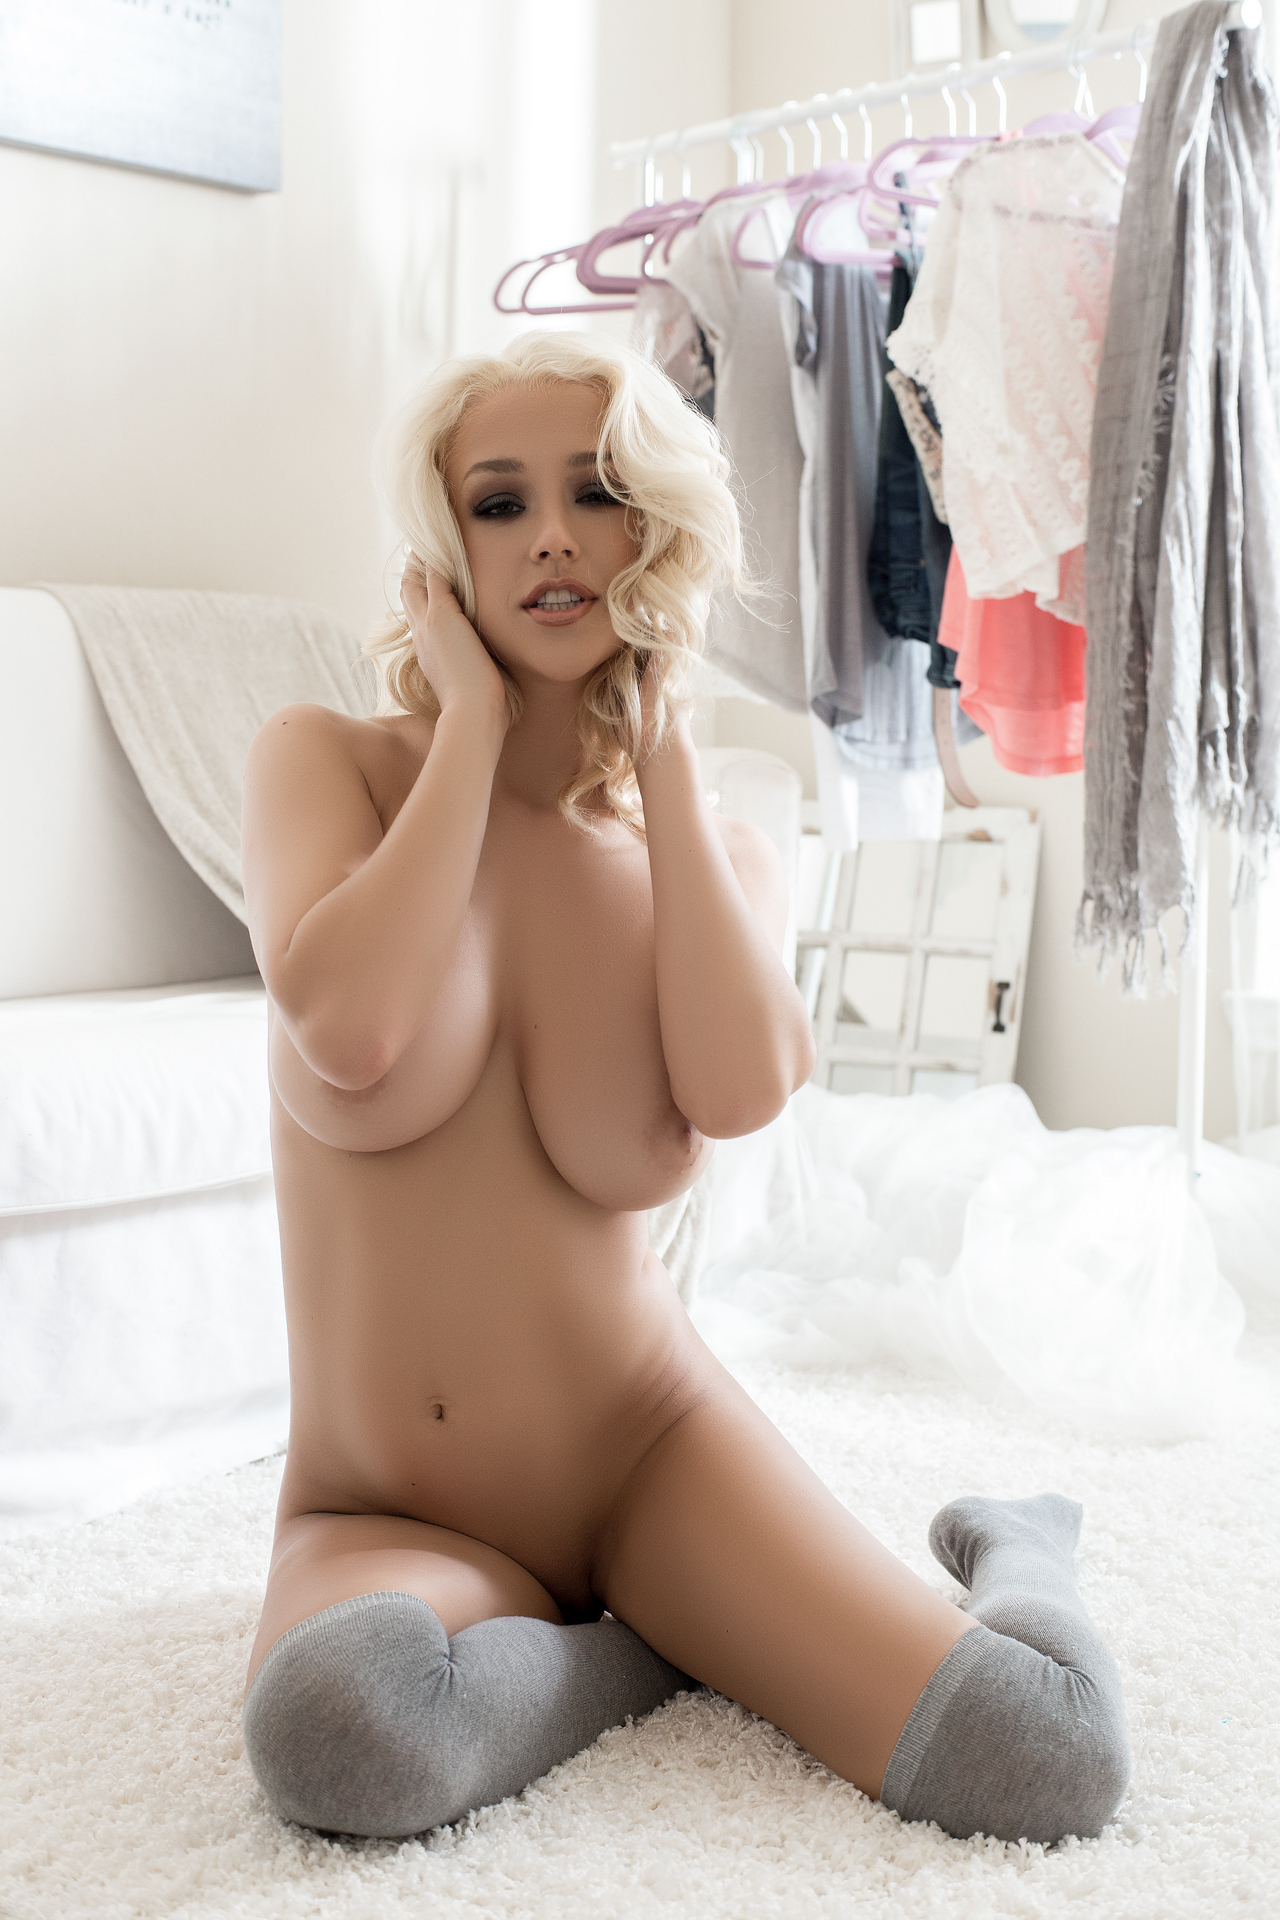 Bedroom flirt sabrina nichole playboy